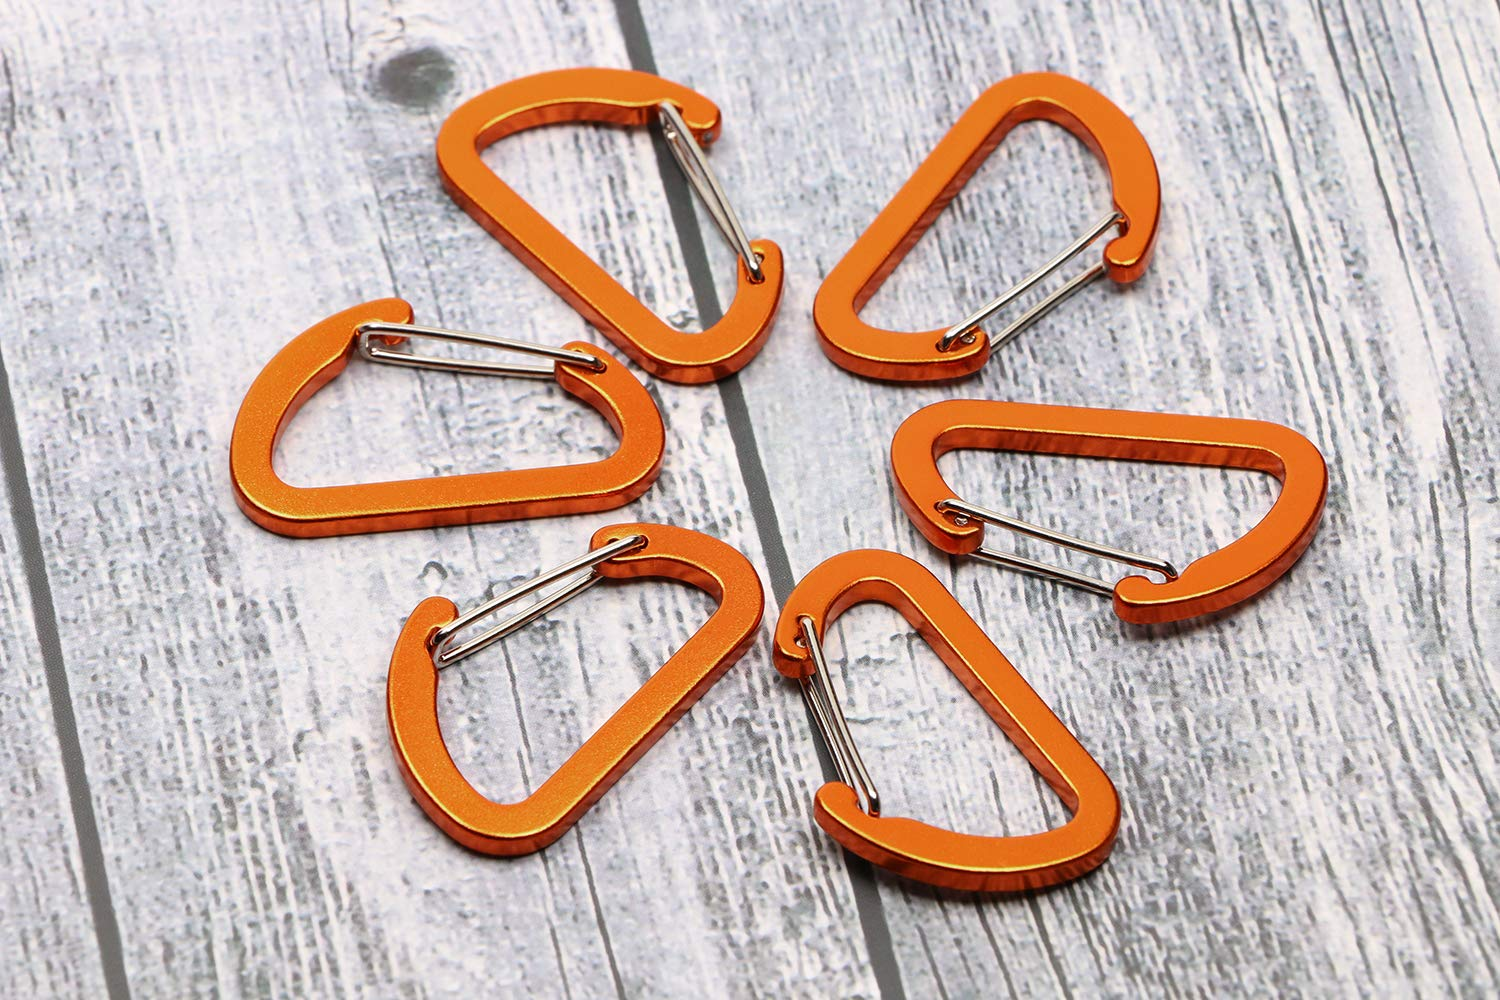 Camping and Travelling Pack of 12 Mini Skater 1.5 Inch Length Aluminum Alloy D Ring Keychain Clip Buckle Lightweight Wire Gate Spring-Loaded Snap Hook for Hiking